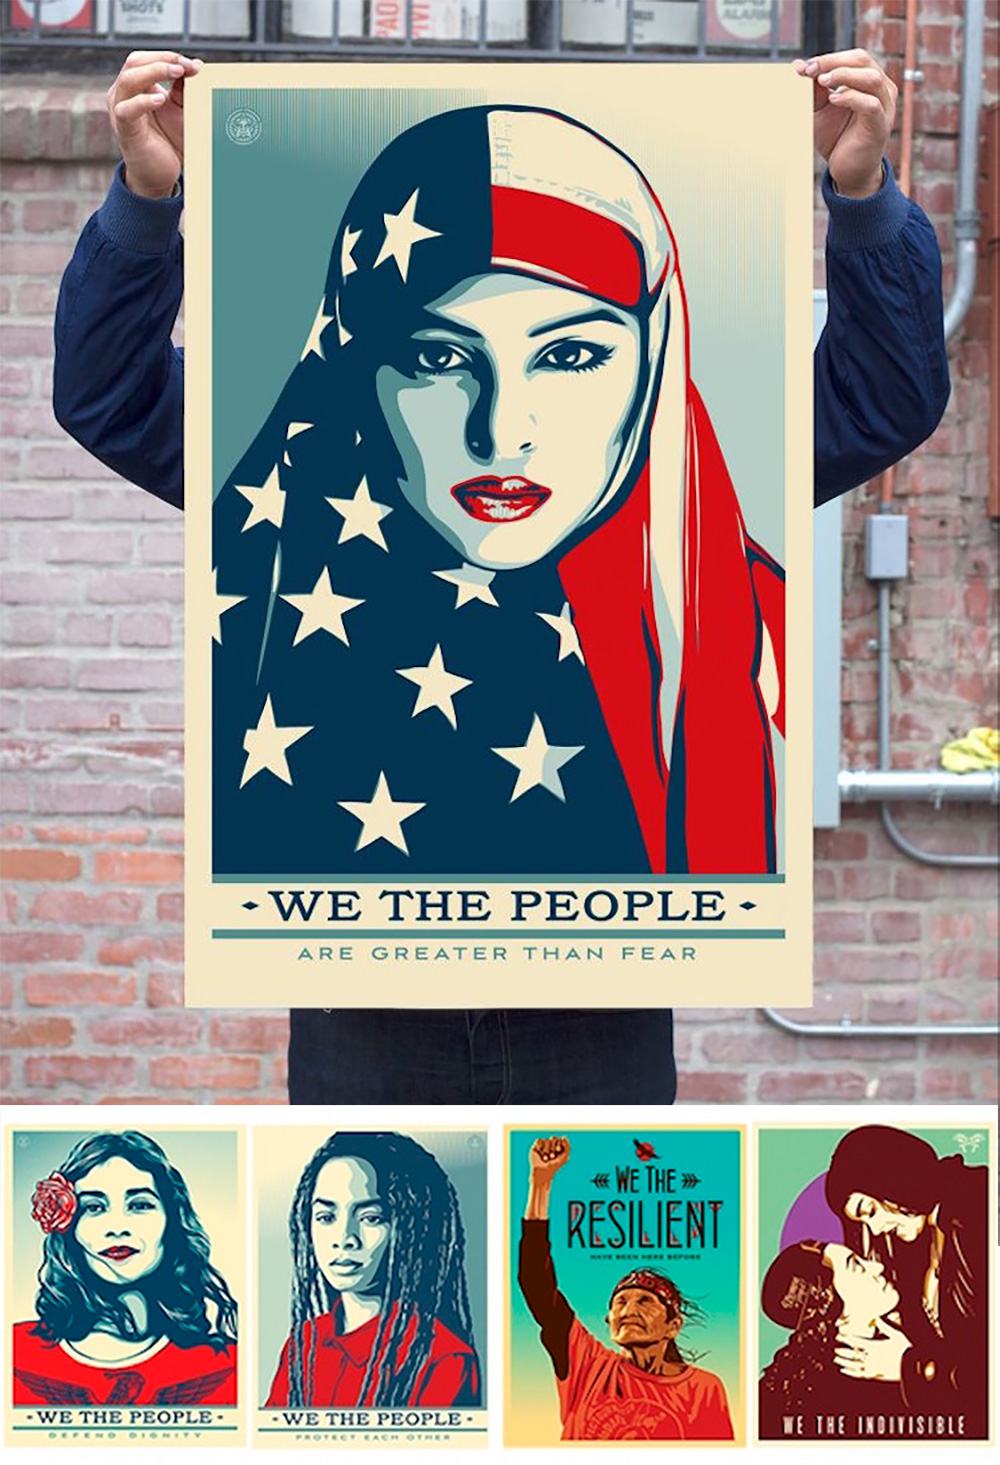 The various posters made by Shepard Fairey for this week's Inauguration in Washington, DC (via Kickstarter).